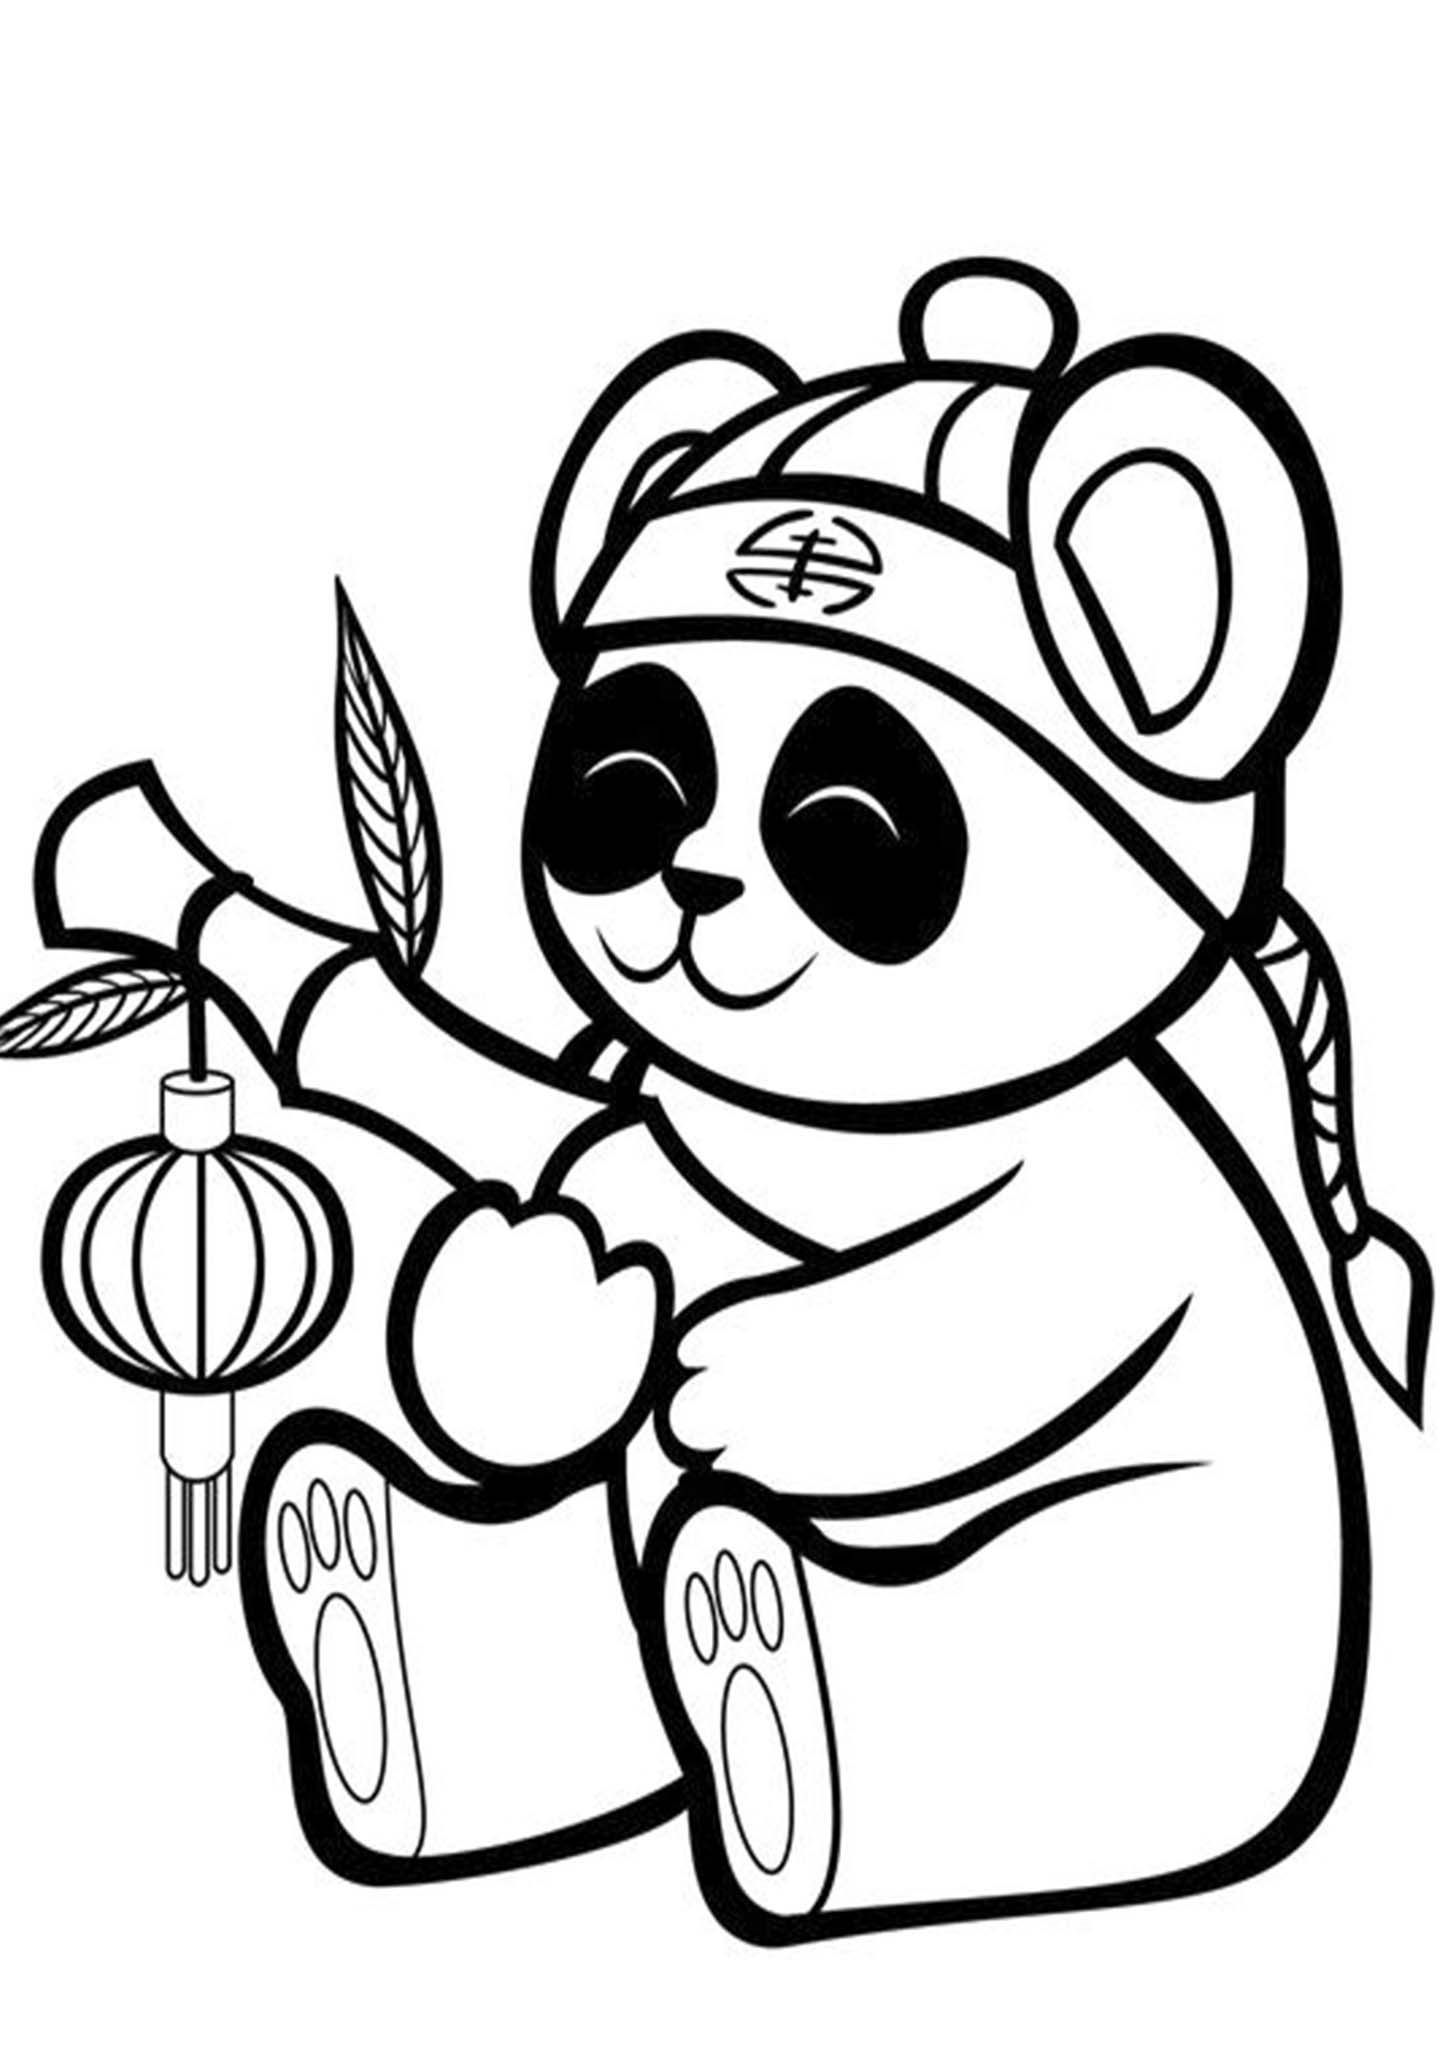 Free Easy To Print Panda Coloring Pages In 2020 Dinosaur Coloring Pages Coloring Pages Panda Coloring Pages